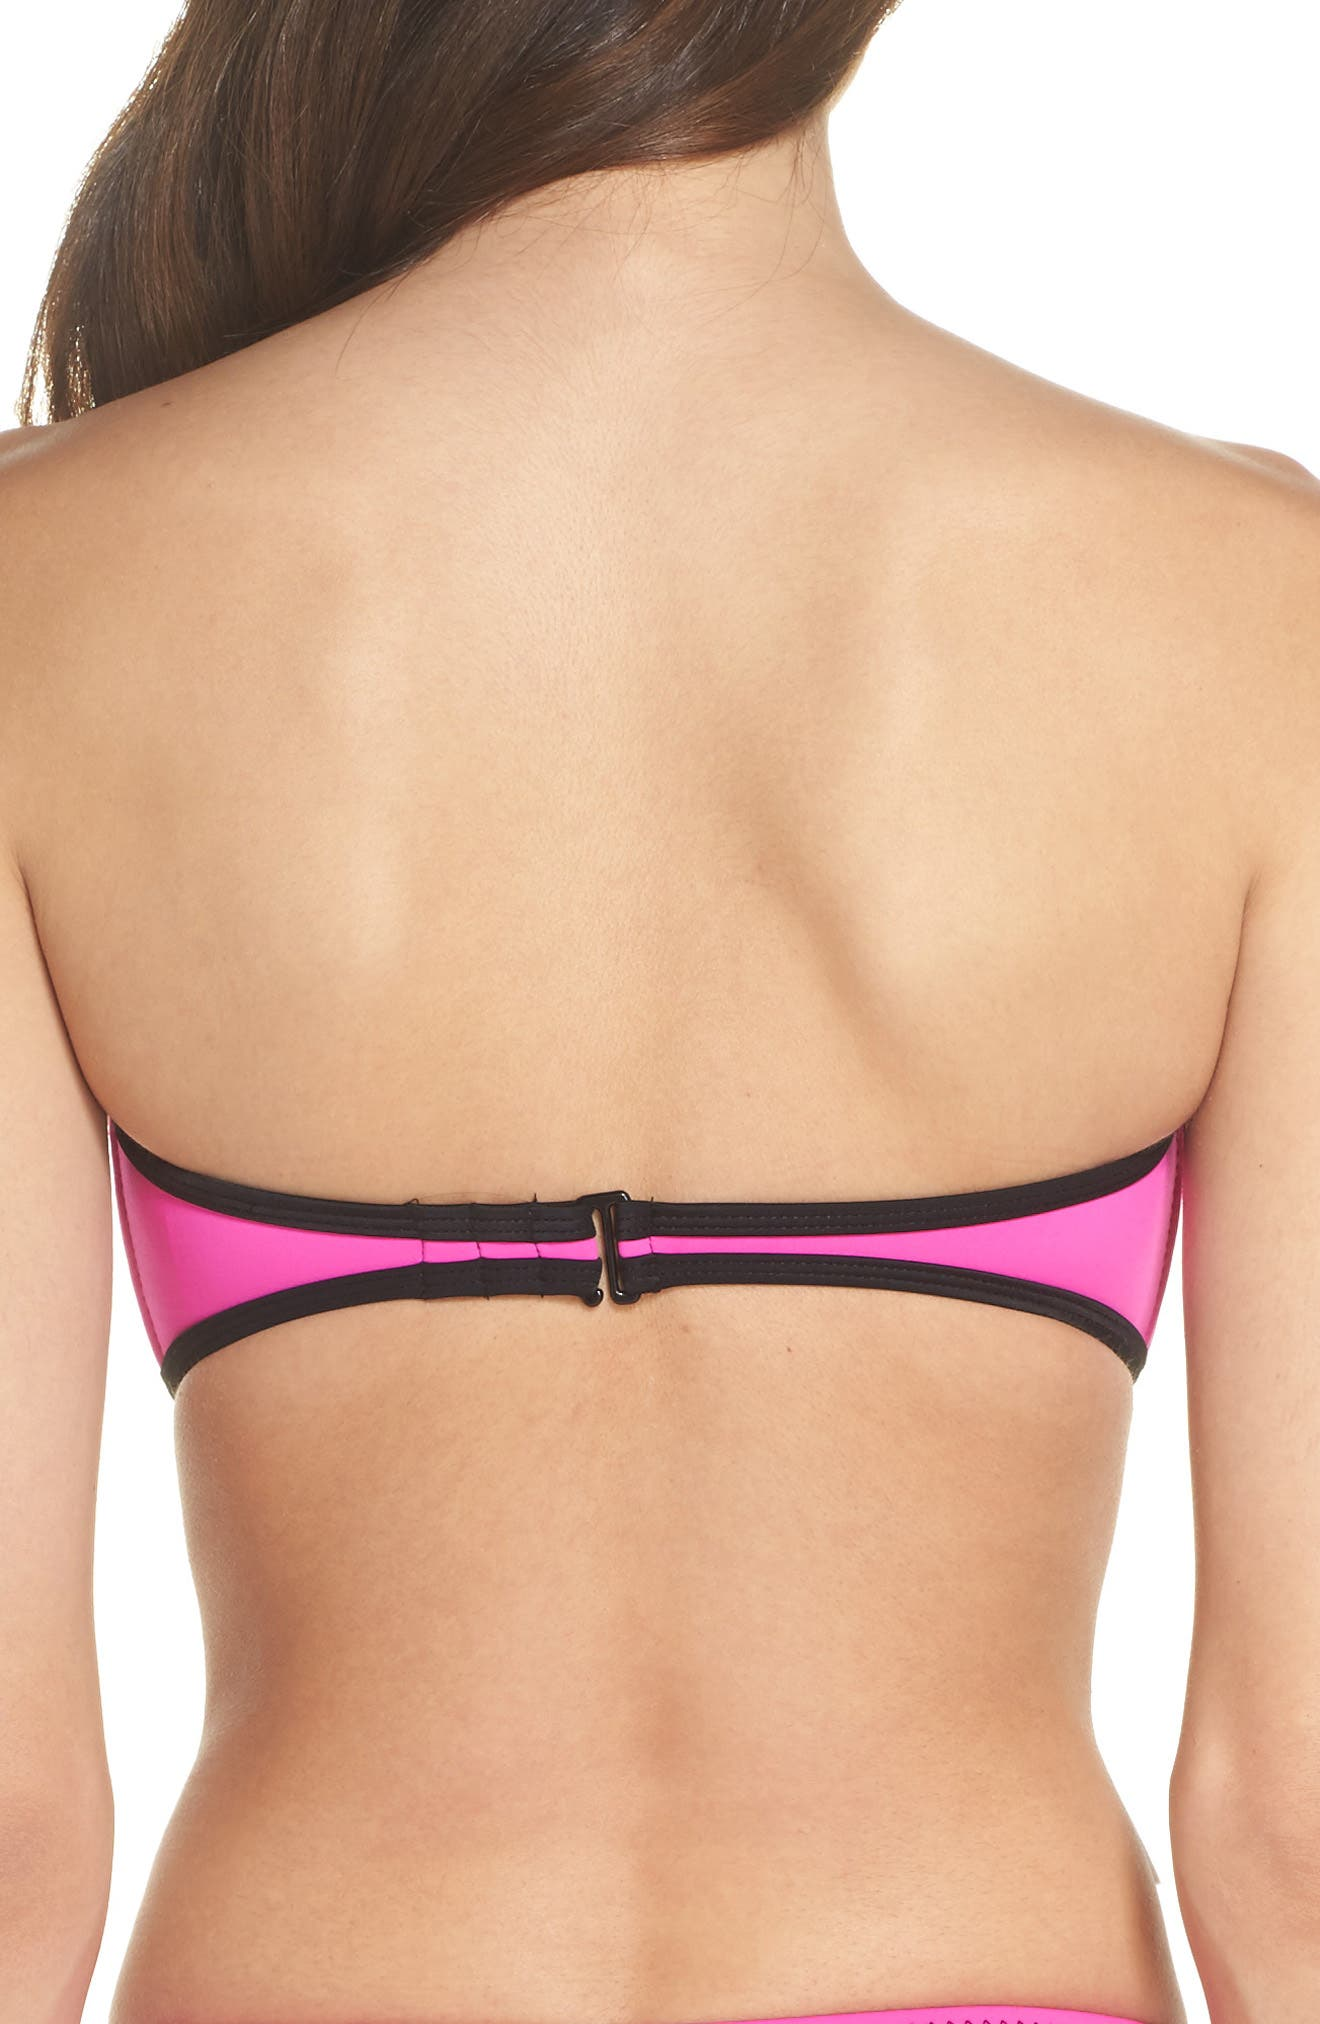 '80s Throwback Tainted Love Bikini Top,                             Alternate thumbnail 2, color,                             673